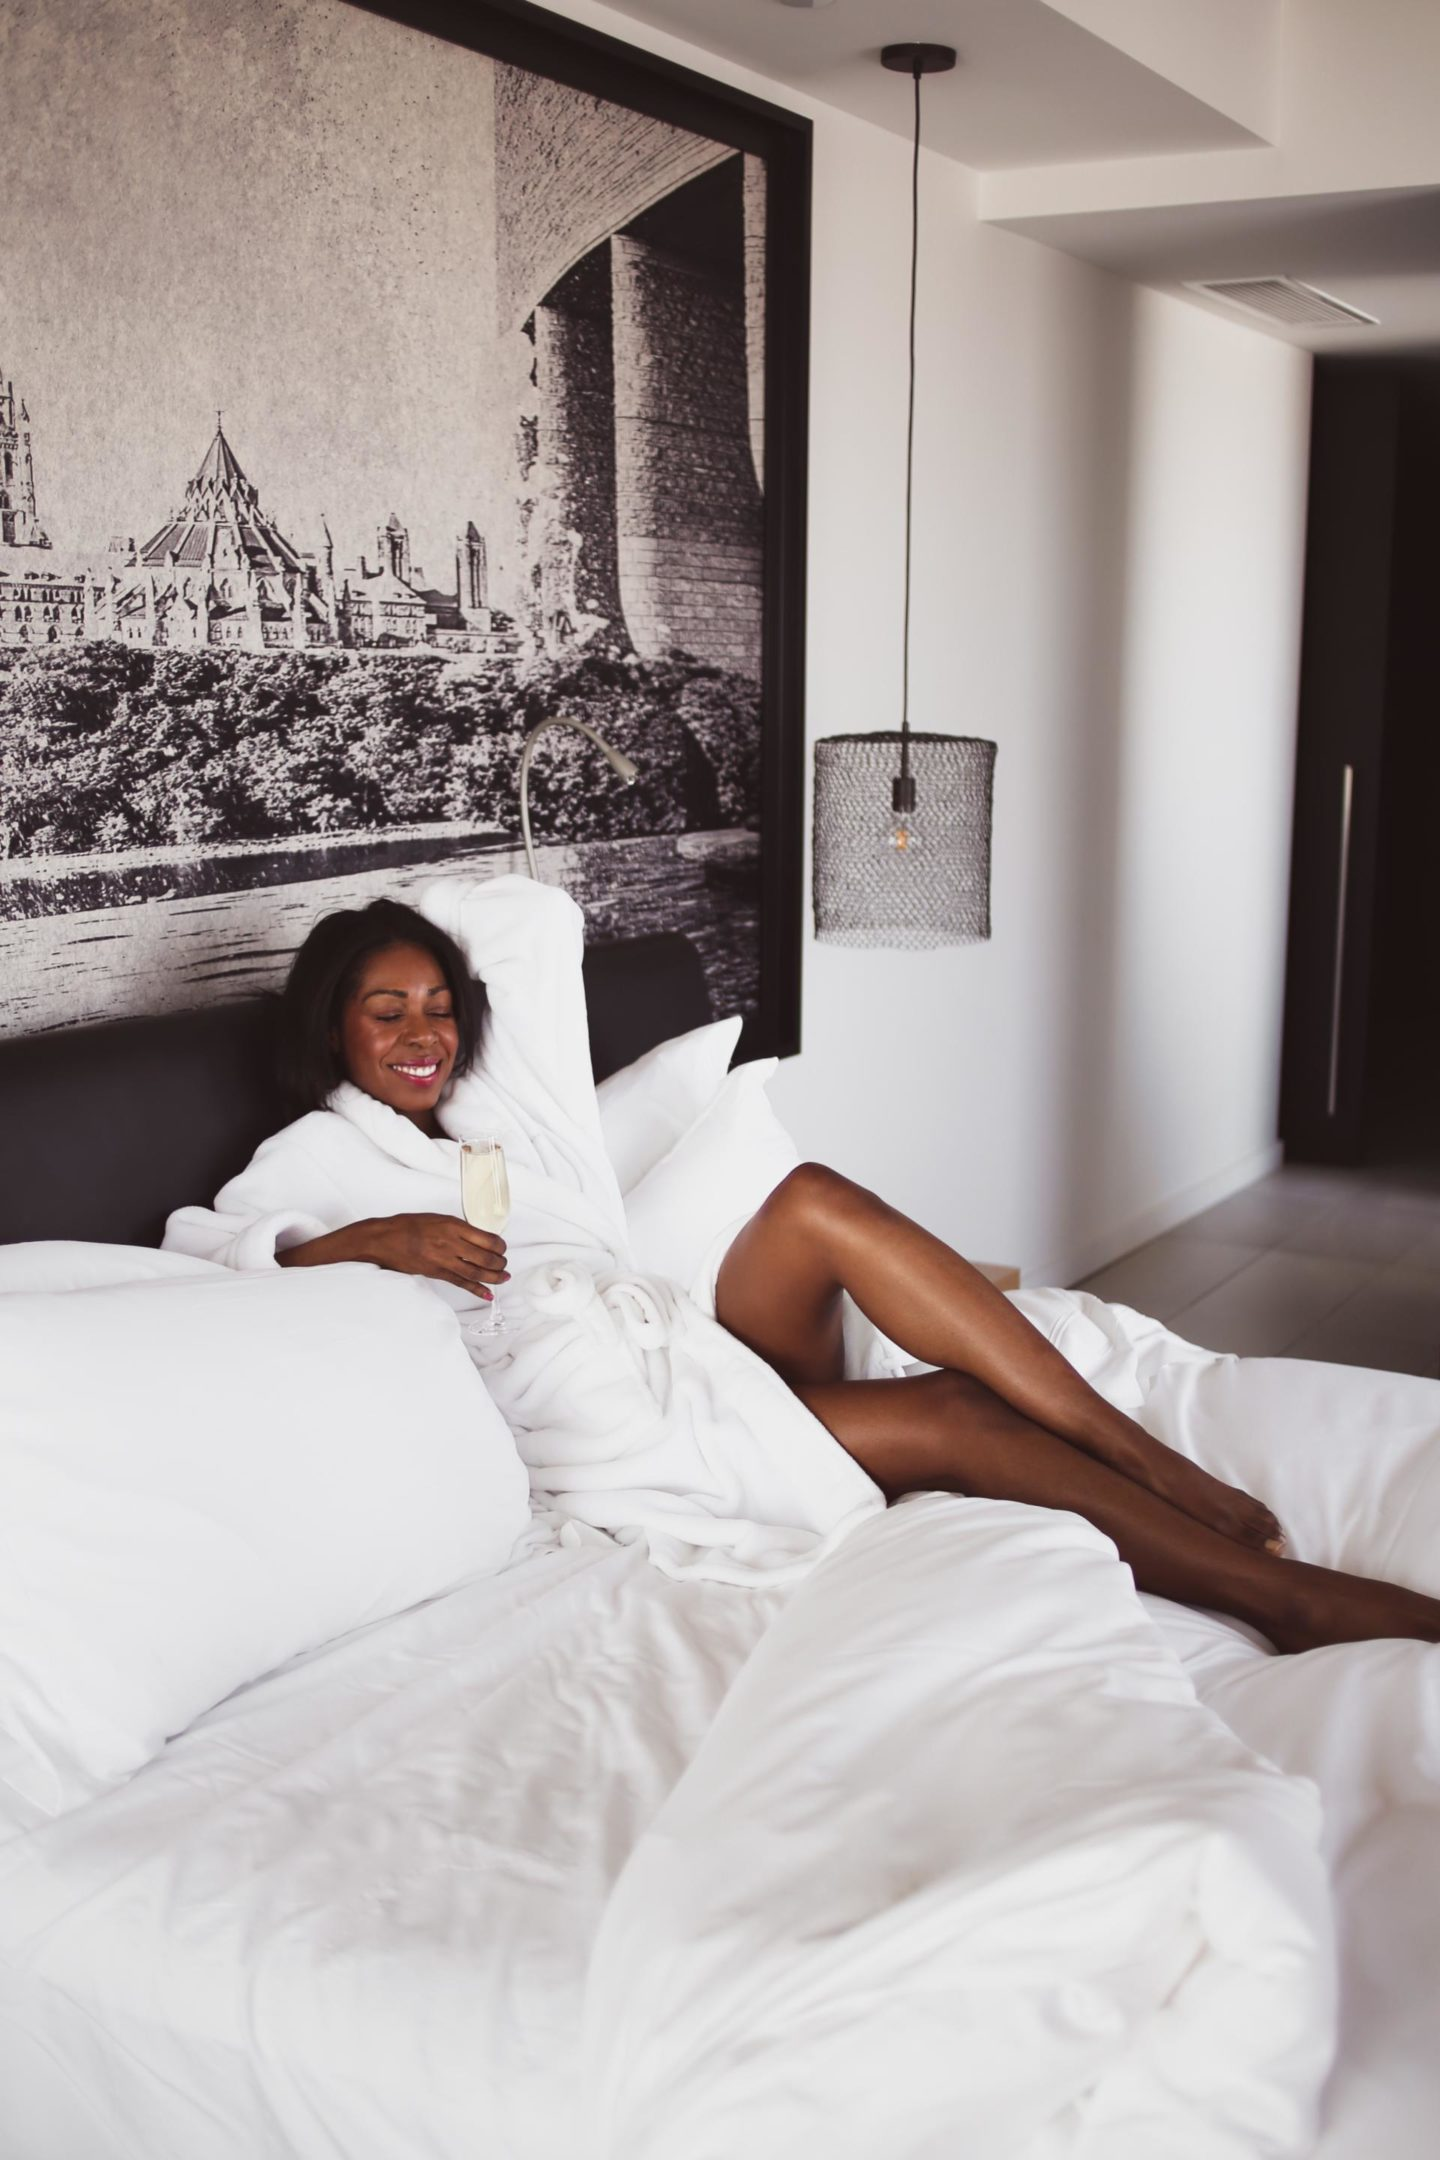 Dominique Baker lying in bed holding a glass of champagne at the Hotel Le Germain in Ottawa